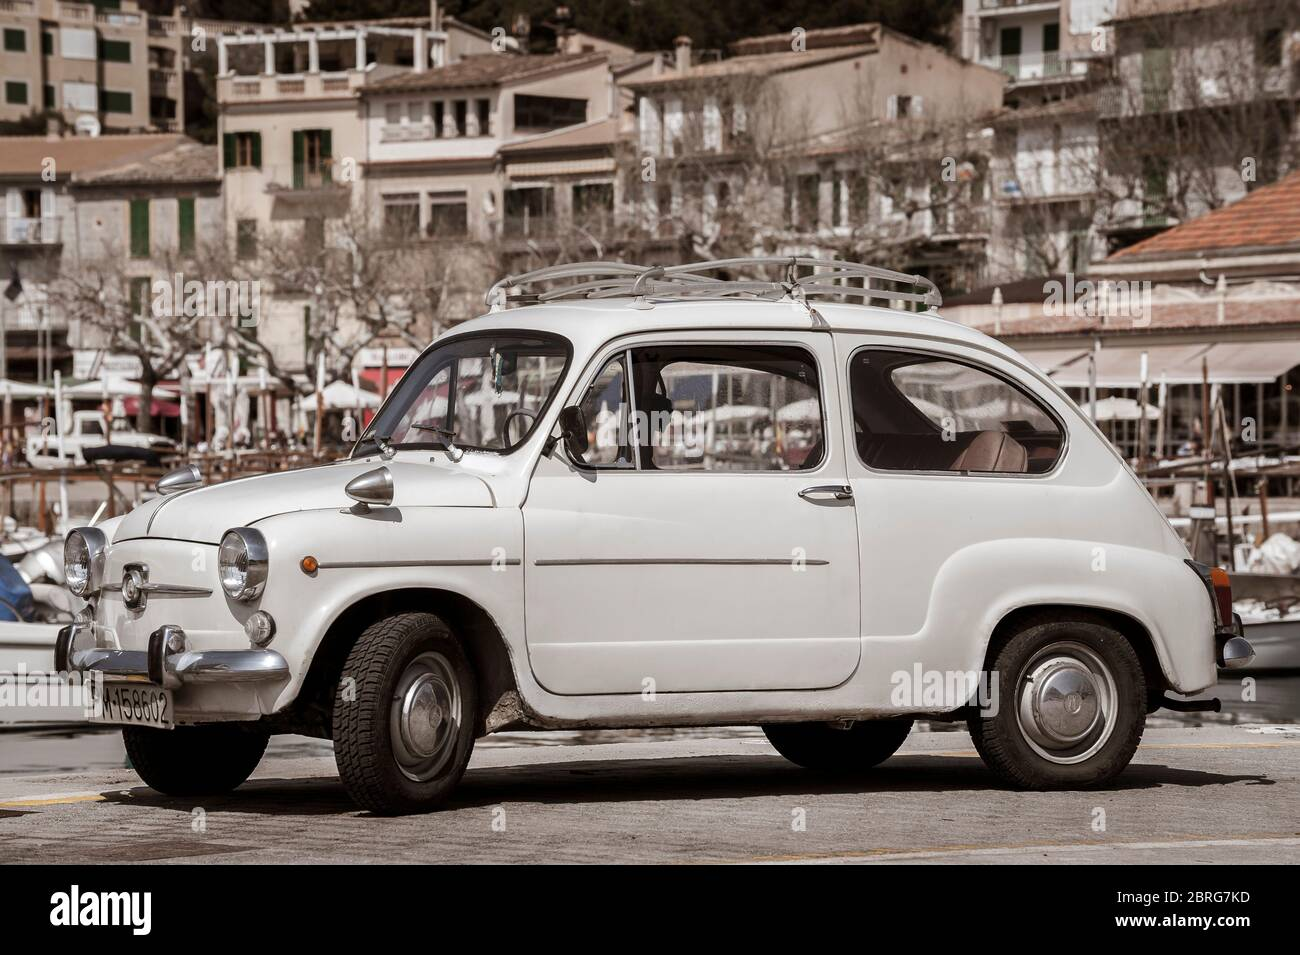 Fiat 600 High Resolution Stock Photography And Images Alamy